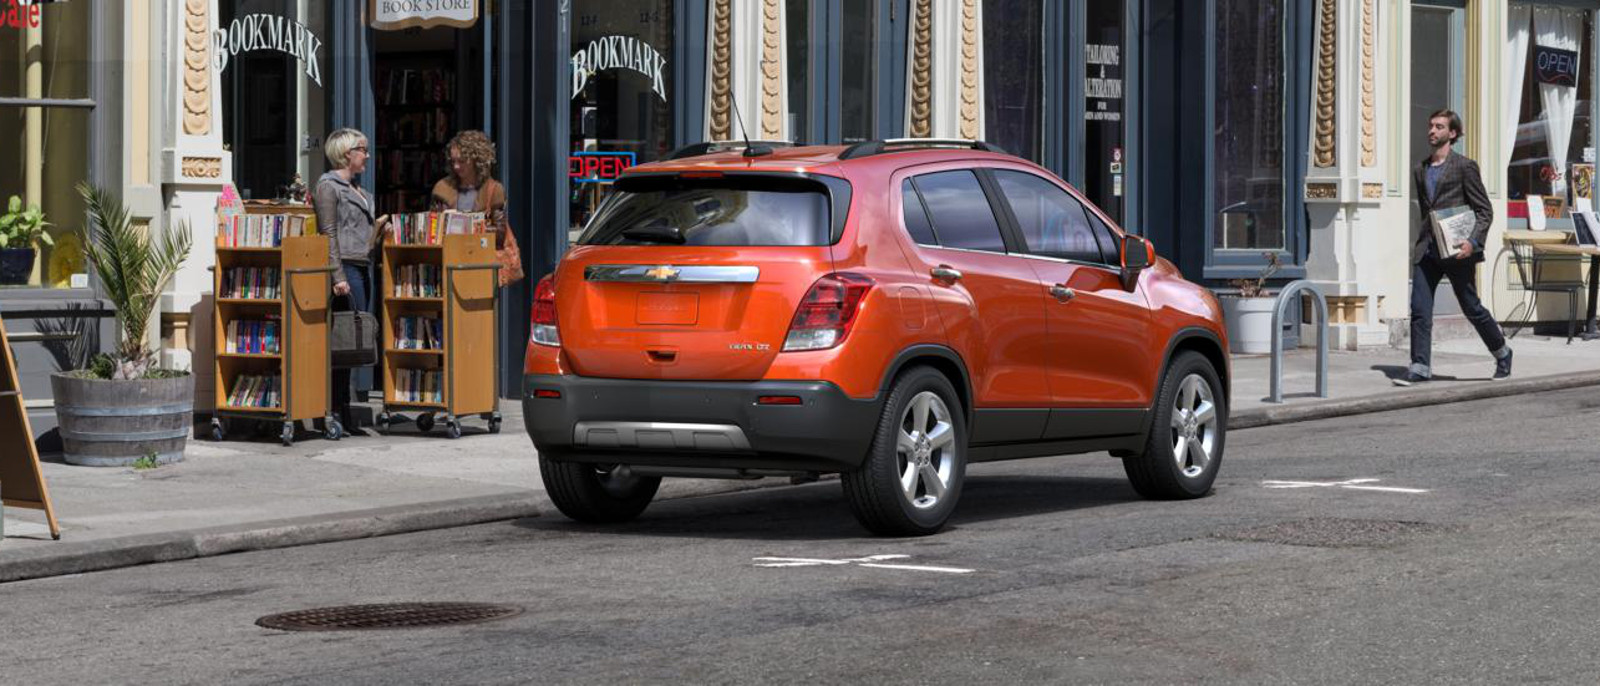 2015 Chevrolet Trax Exterior Rear View